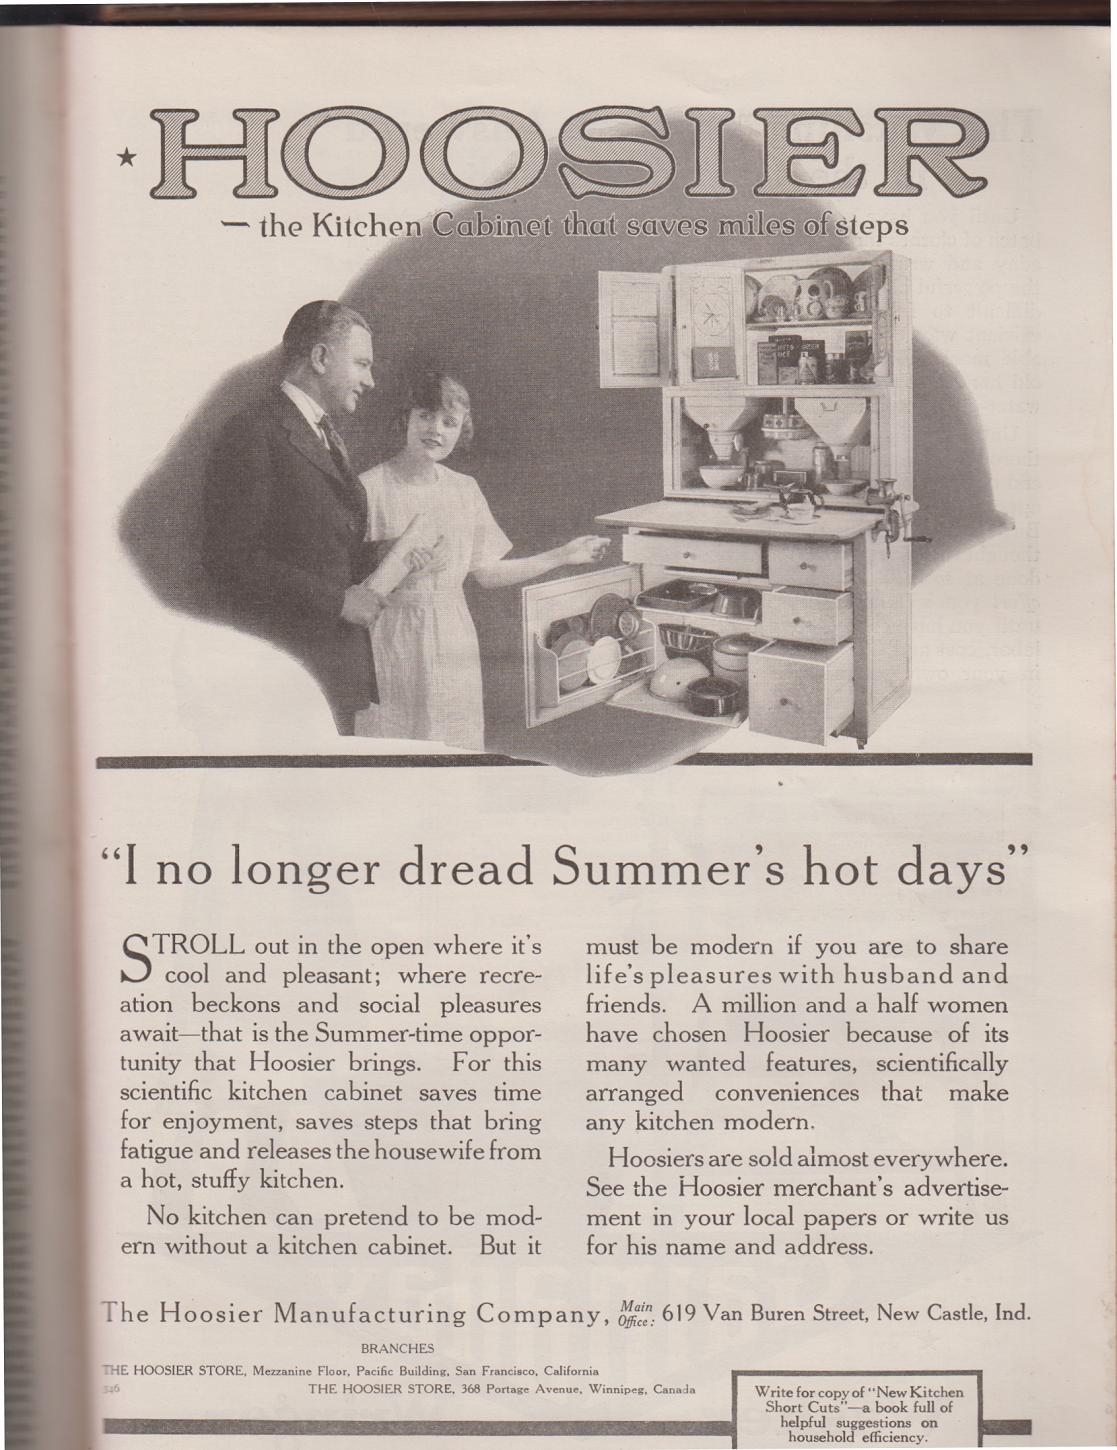 Sunday Adverts: Hoosier Kitchens, Cabinets, and Refrigerators in 1919